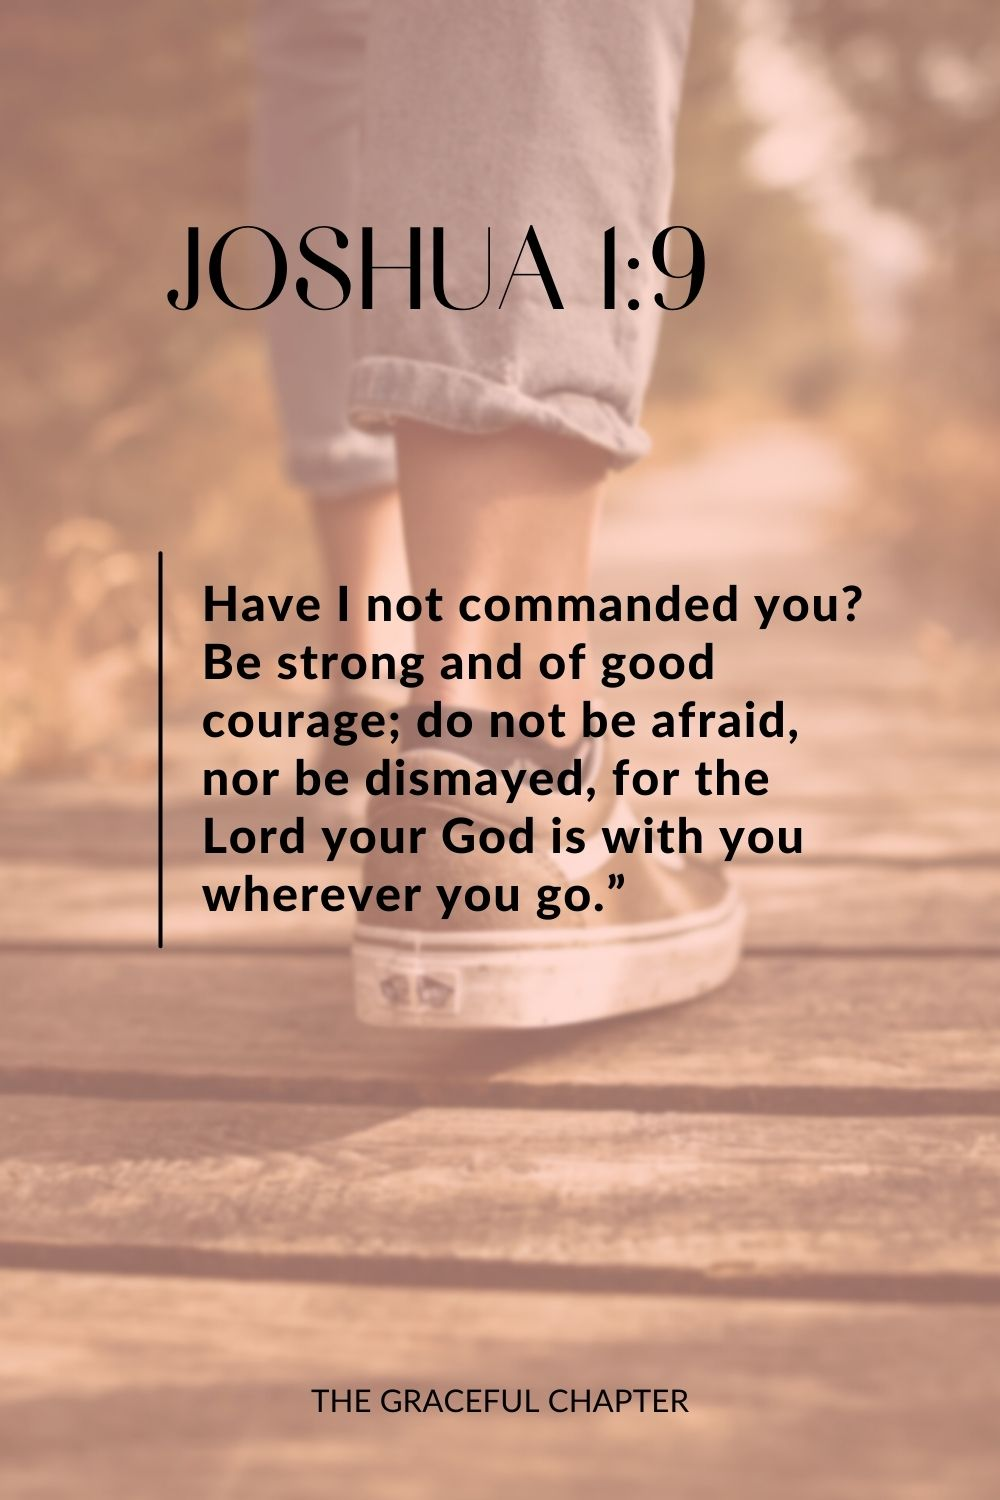 "Have I not commanded you? Be strong and of good courage; do not be afraid, nor be dismayed, for the Lord your God is with you wherever you go."" Joshua 1:9"